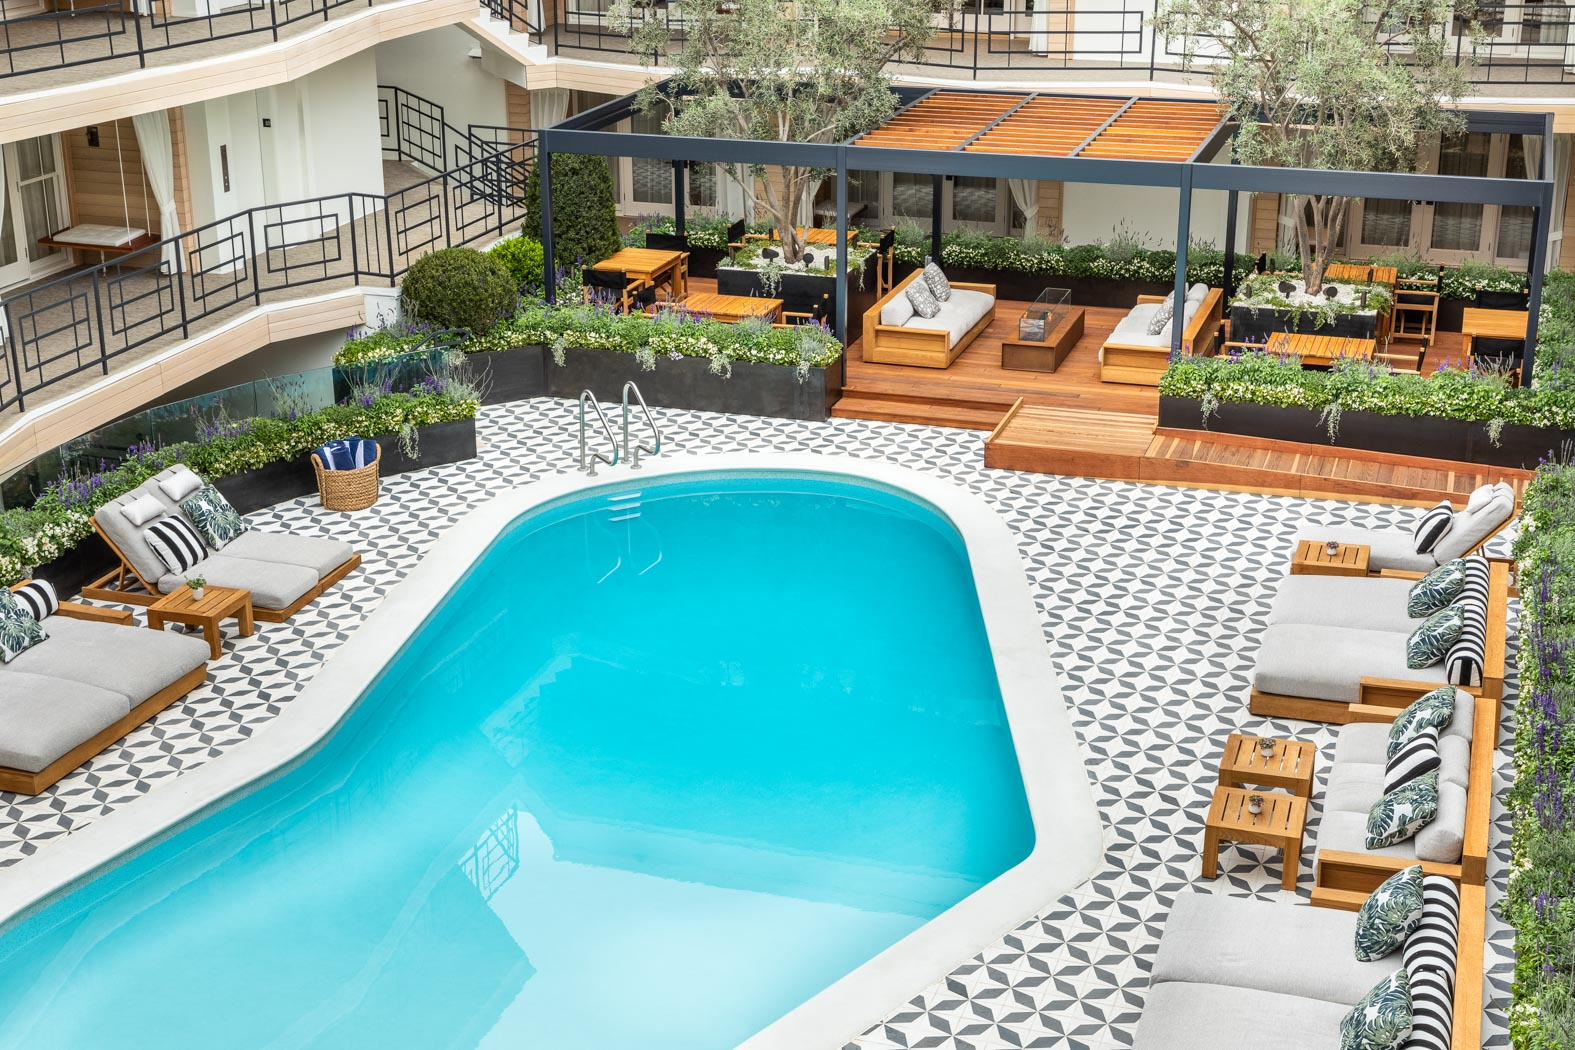 an overhead shot of the pool area next to chairs and a seating area